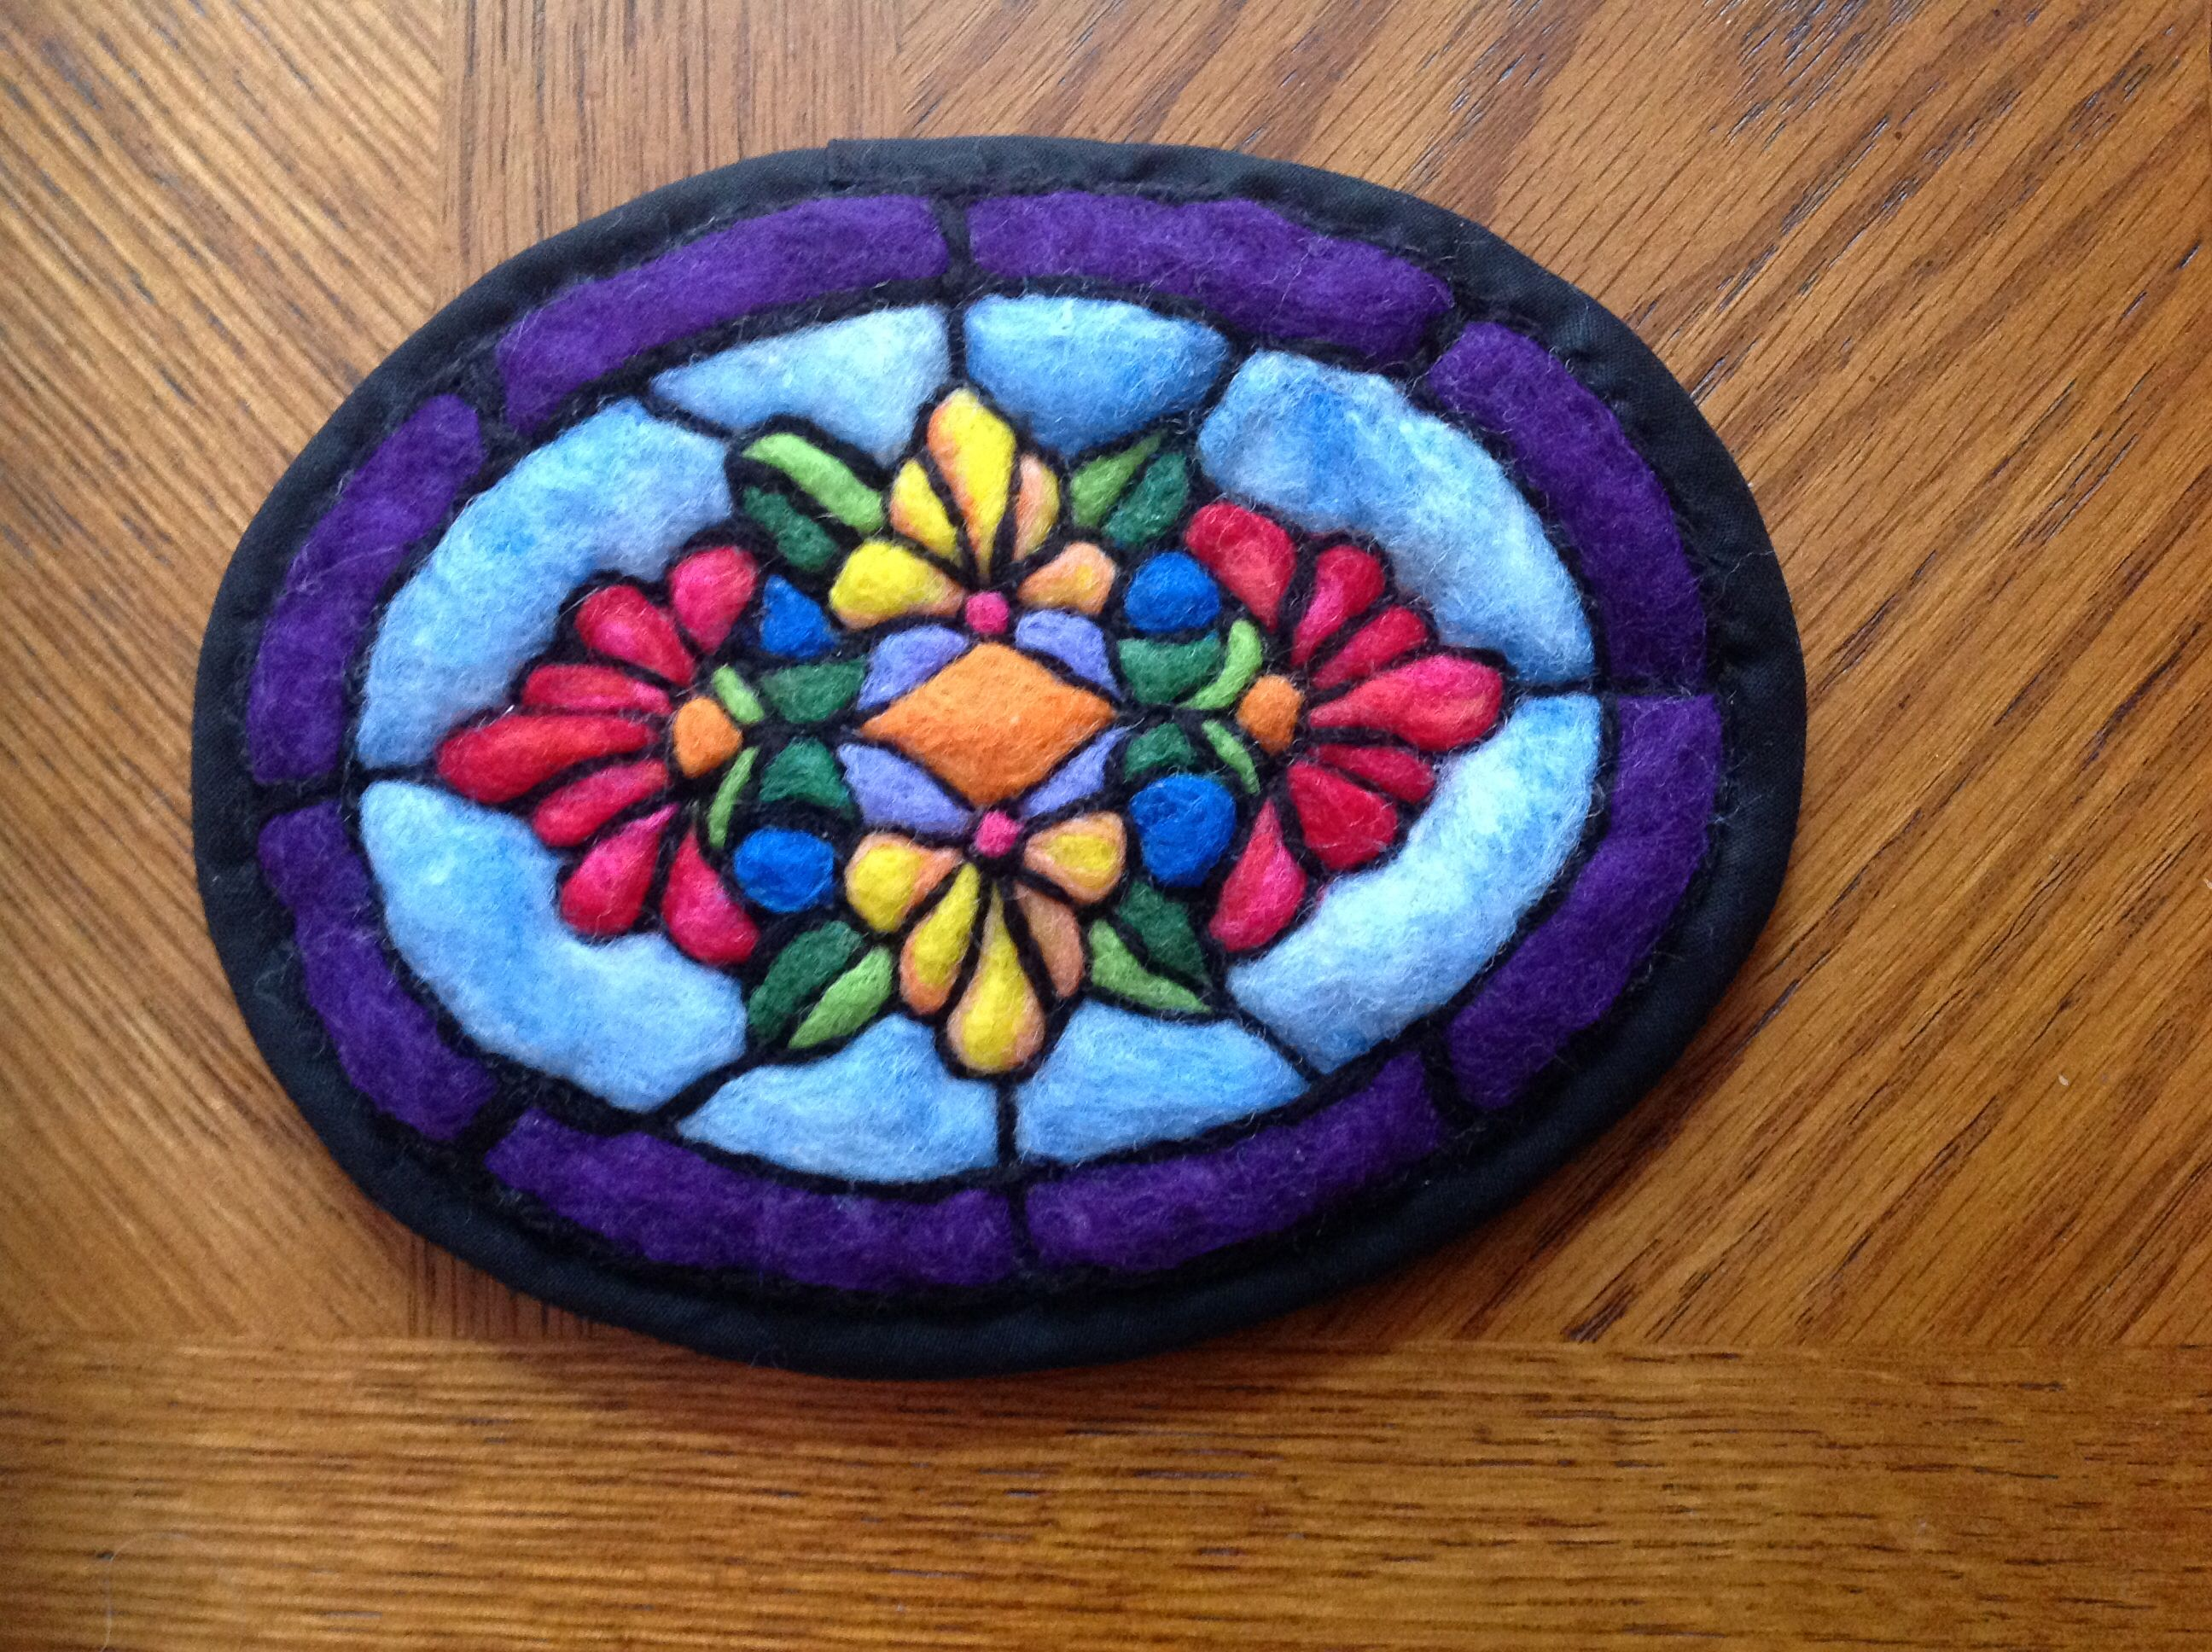 Felted Stained Glass Felt Crafts